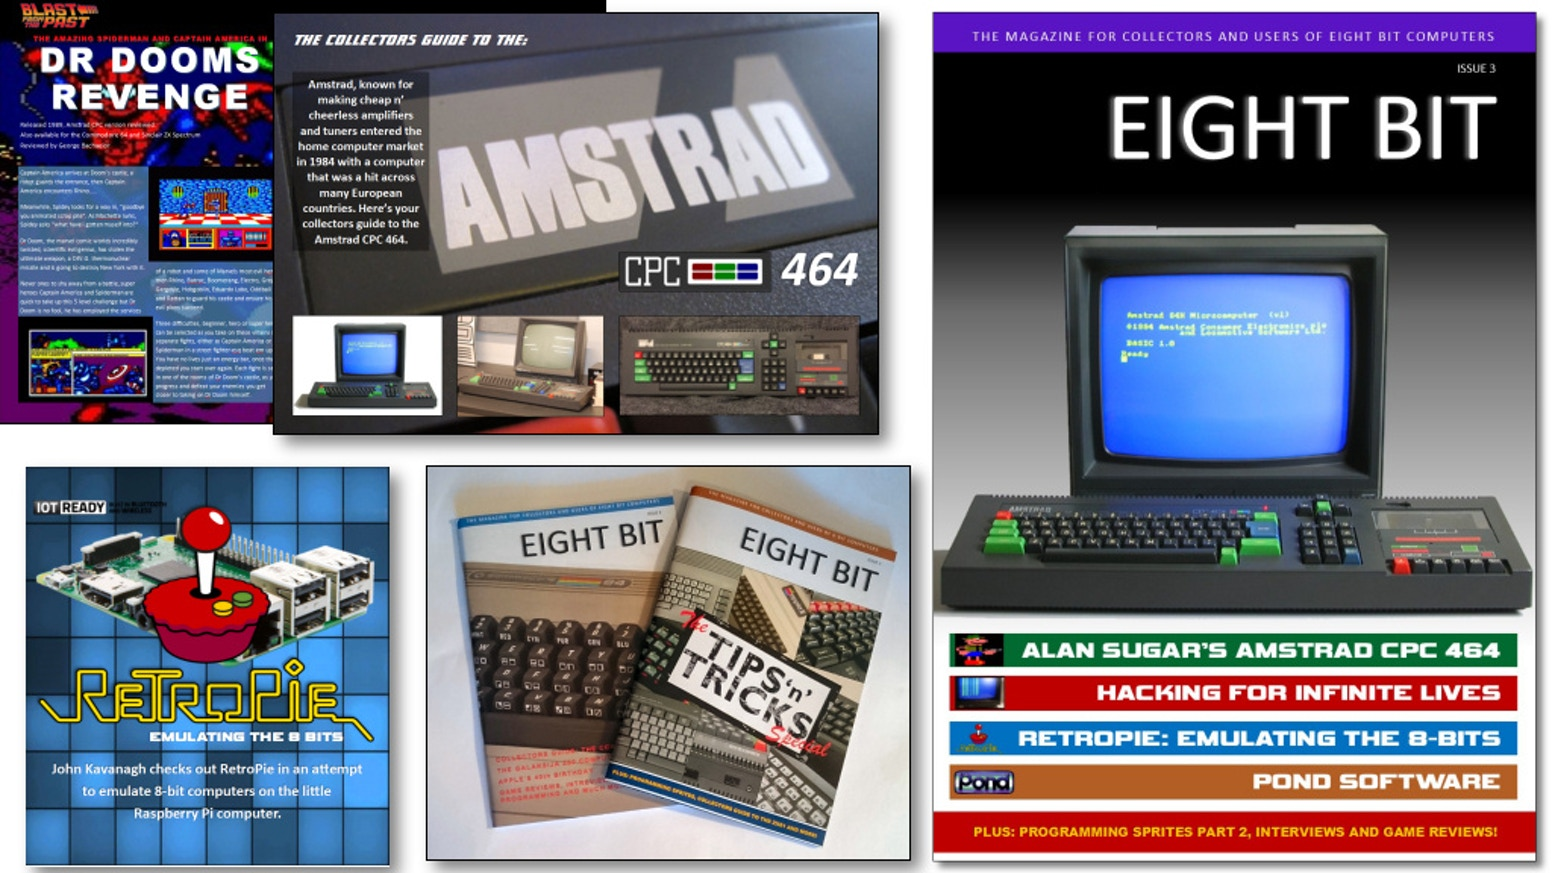 Eight Bit Magazine celebrate 8-bit microcomputers from the 1970's to the early 90's, covering hardware, software and programming.